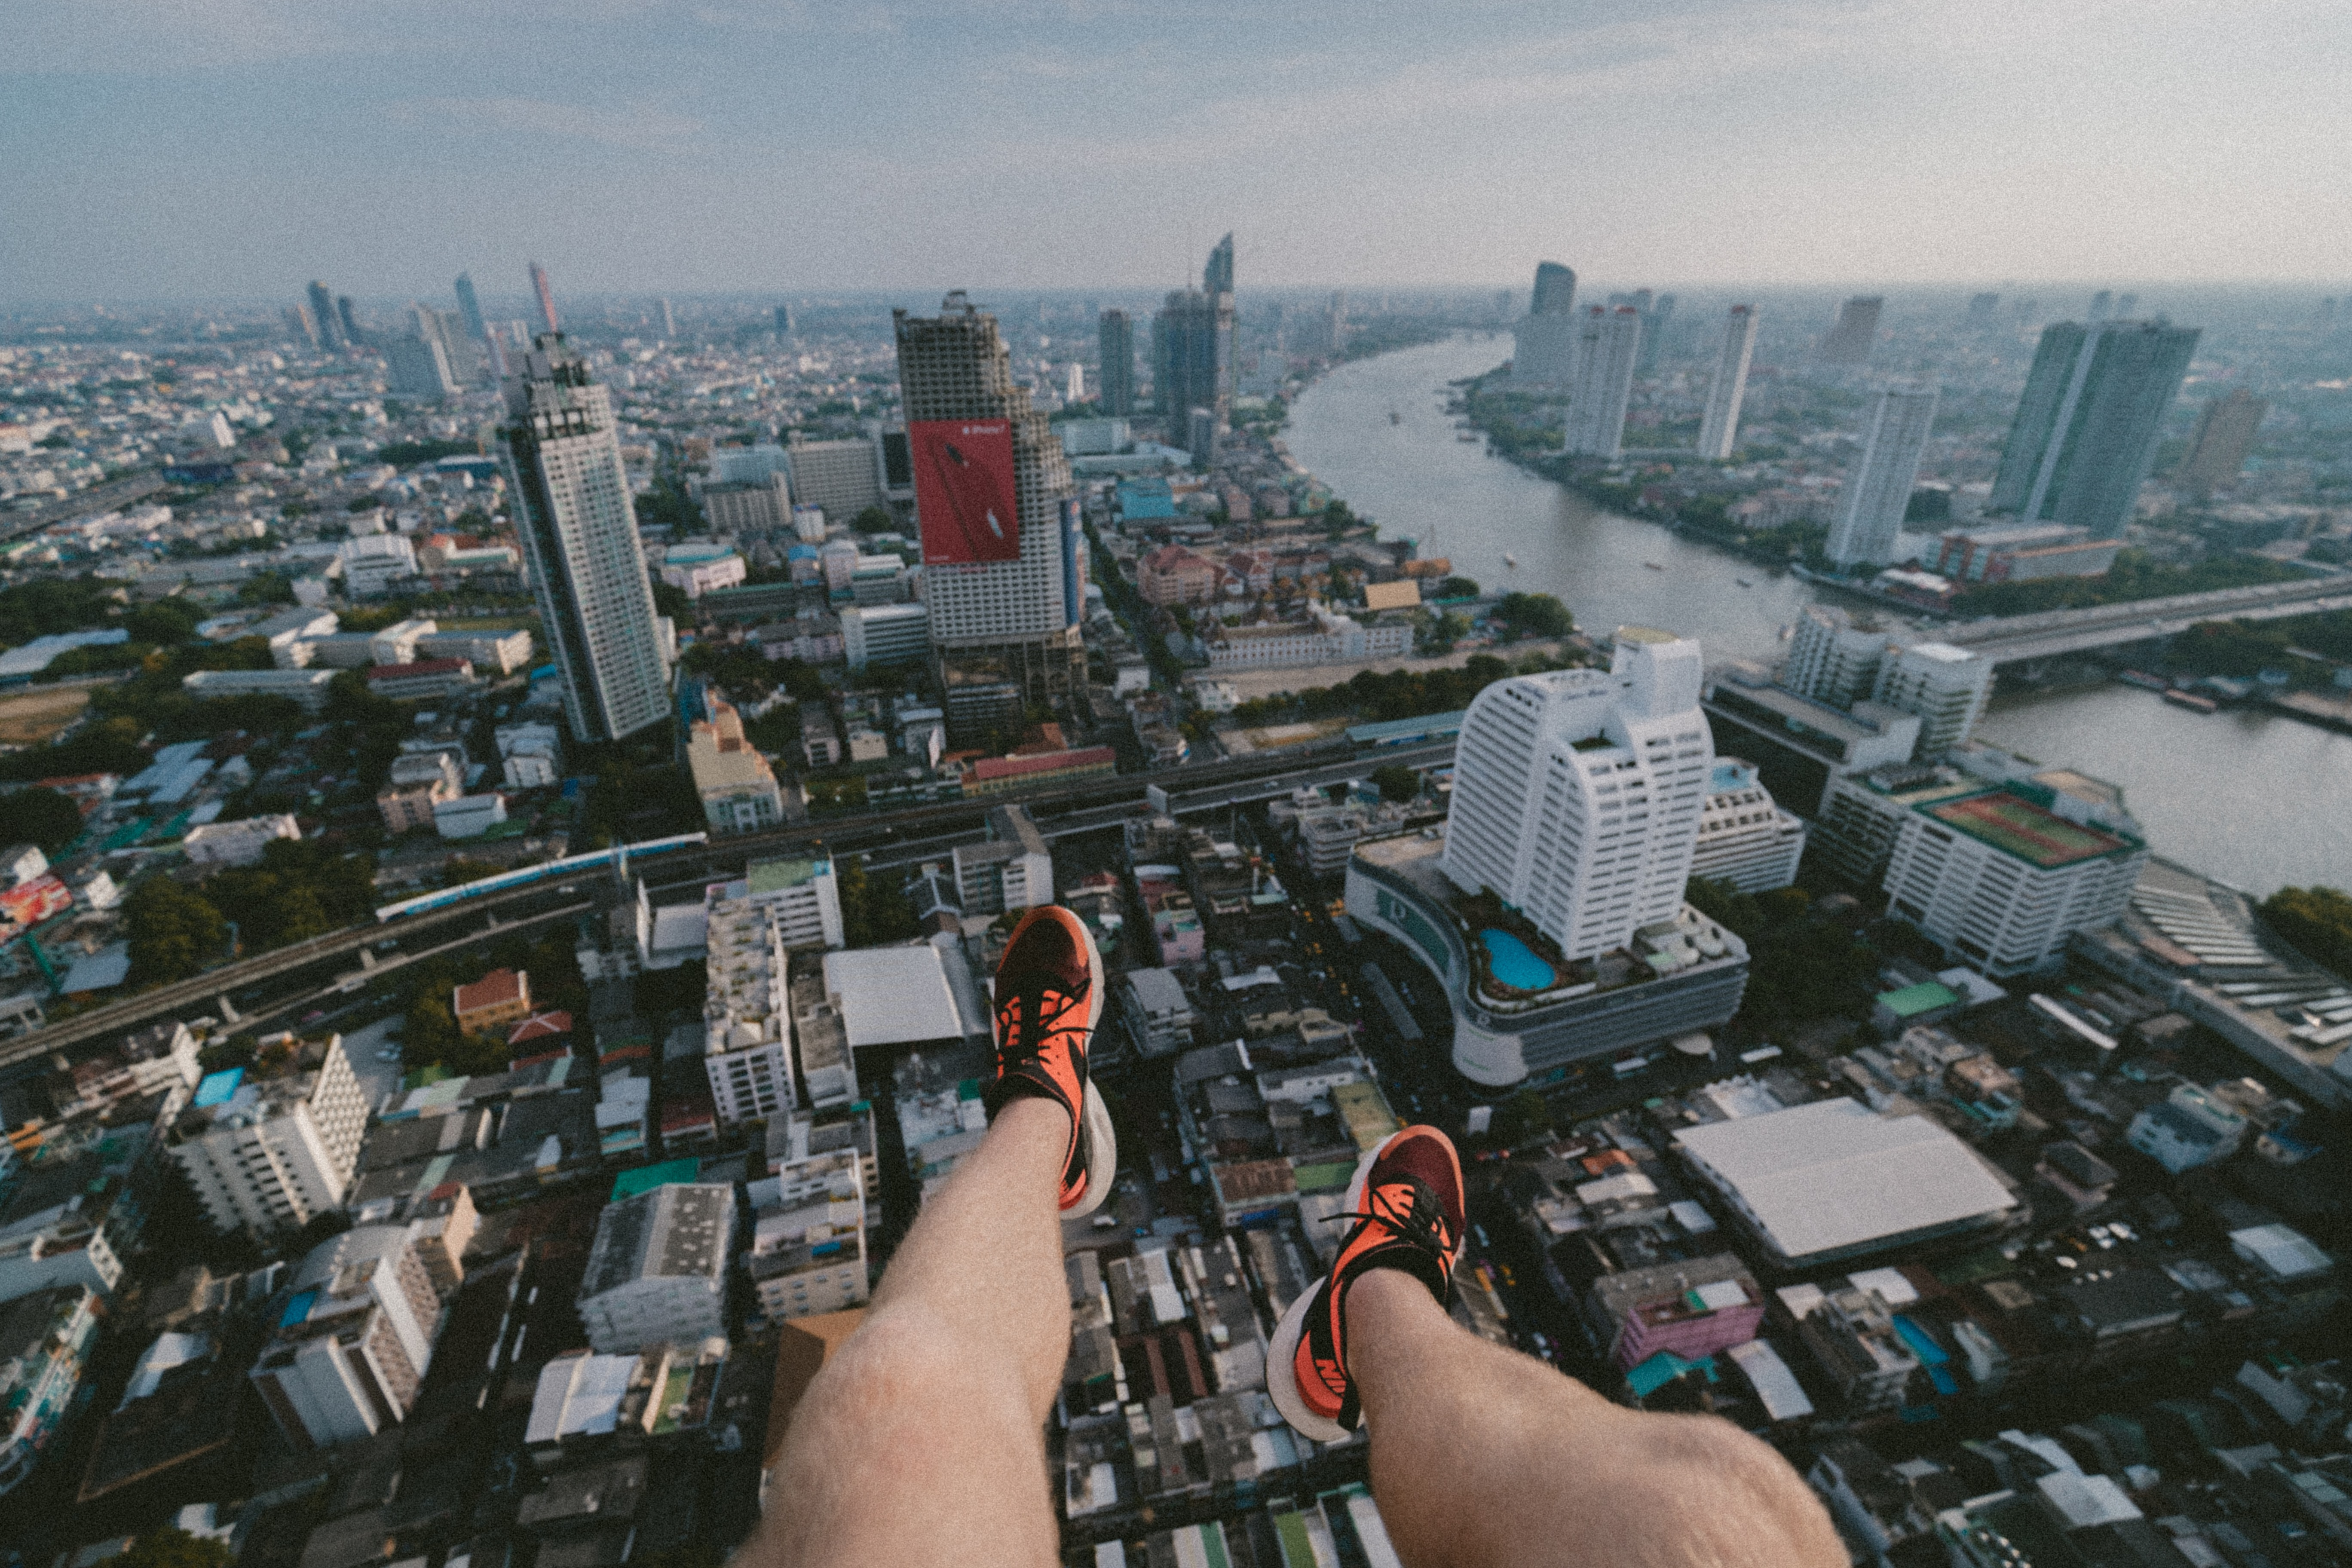 man paragliding taking aerial photography of city scapes during daytime